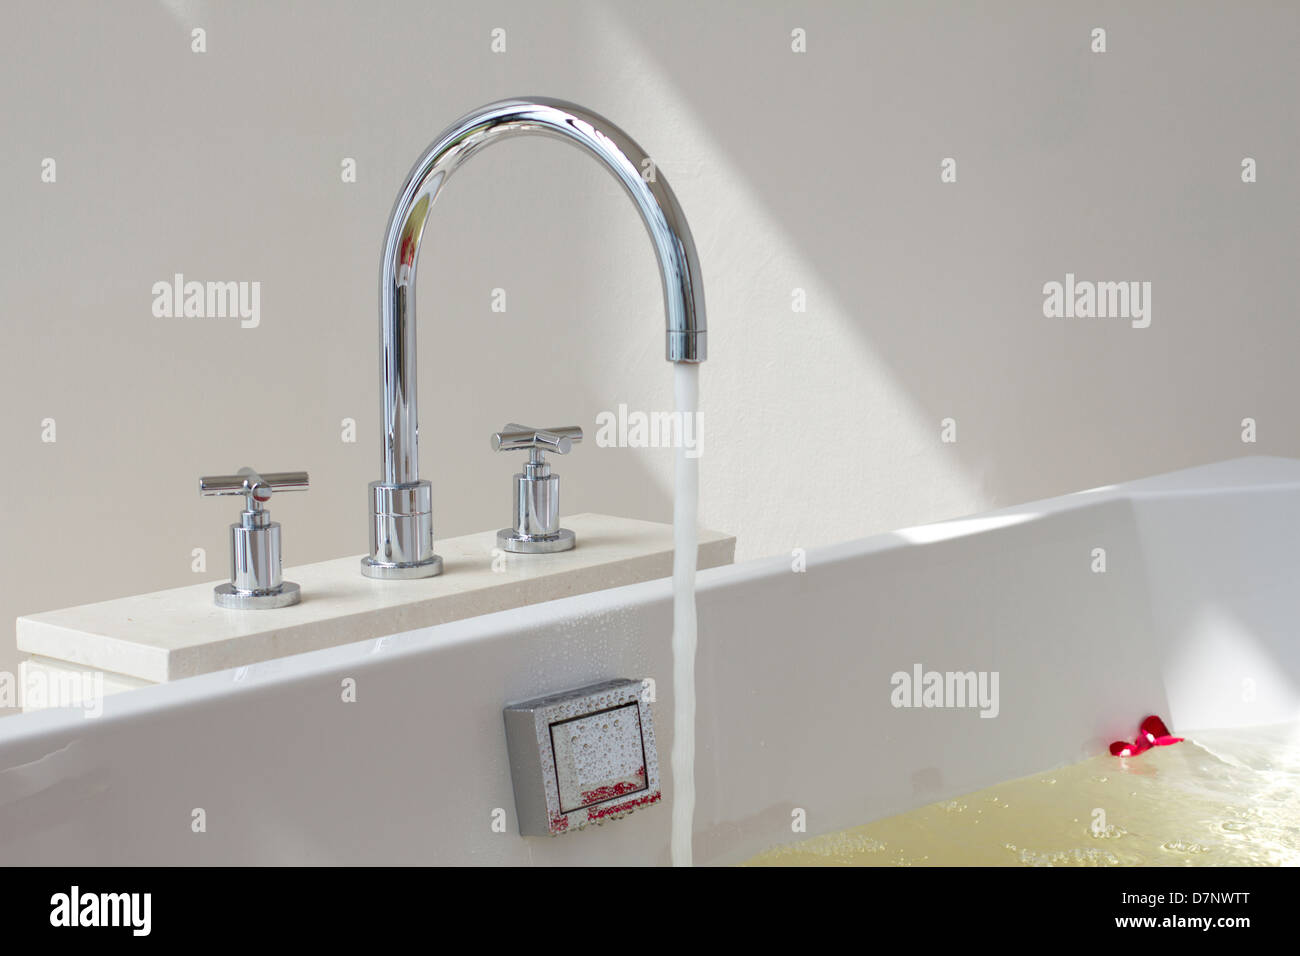 Luxury bath tub and faucet with water and flowers Stock Photo ...